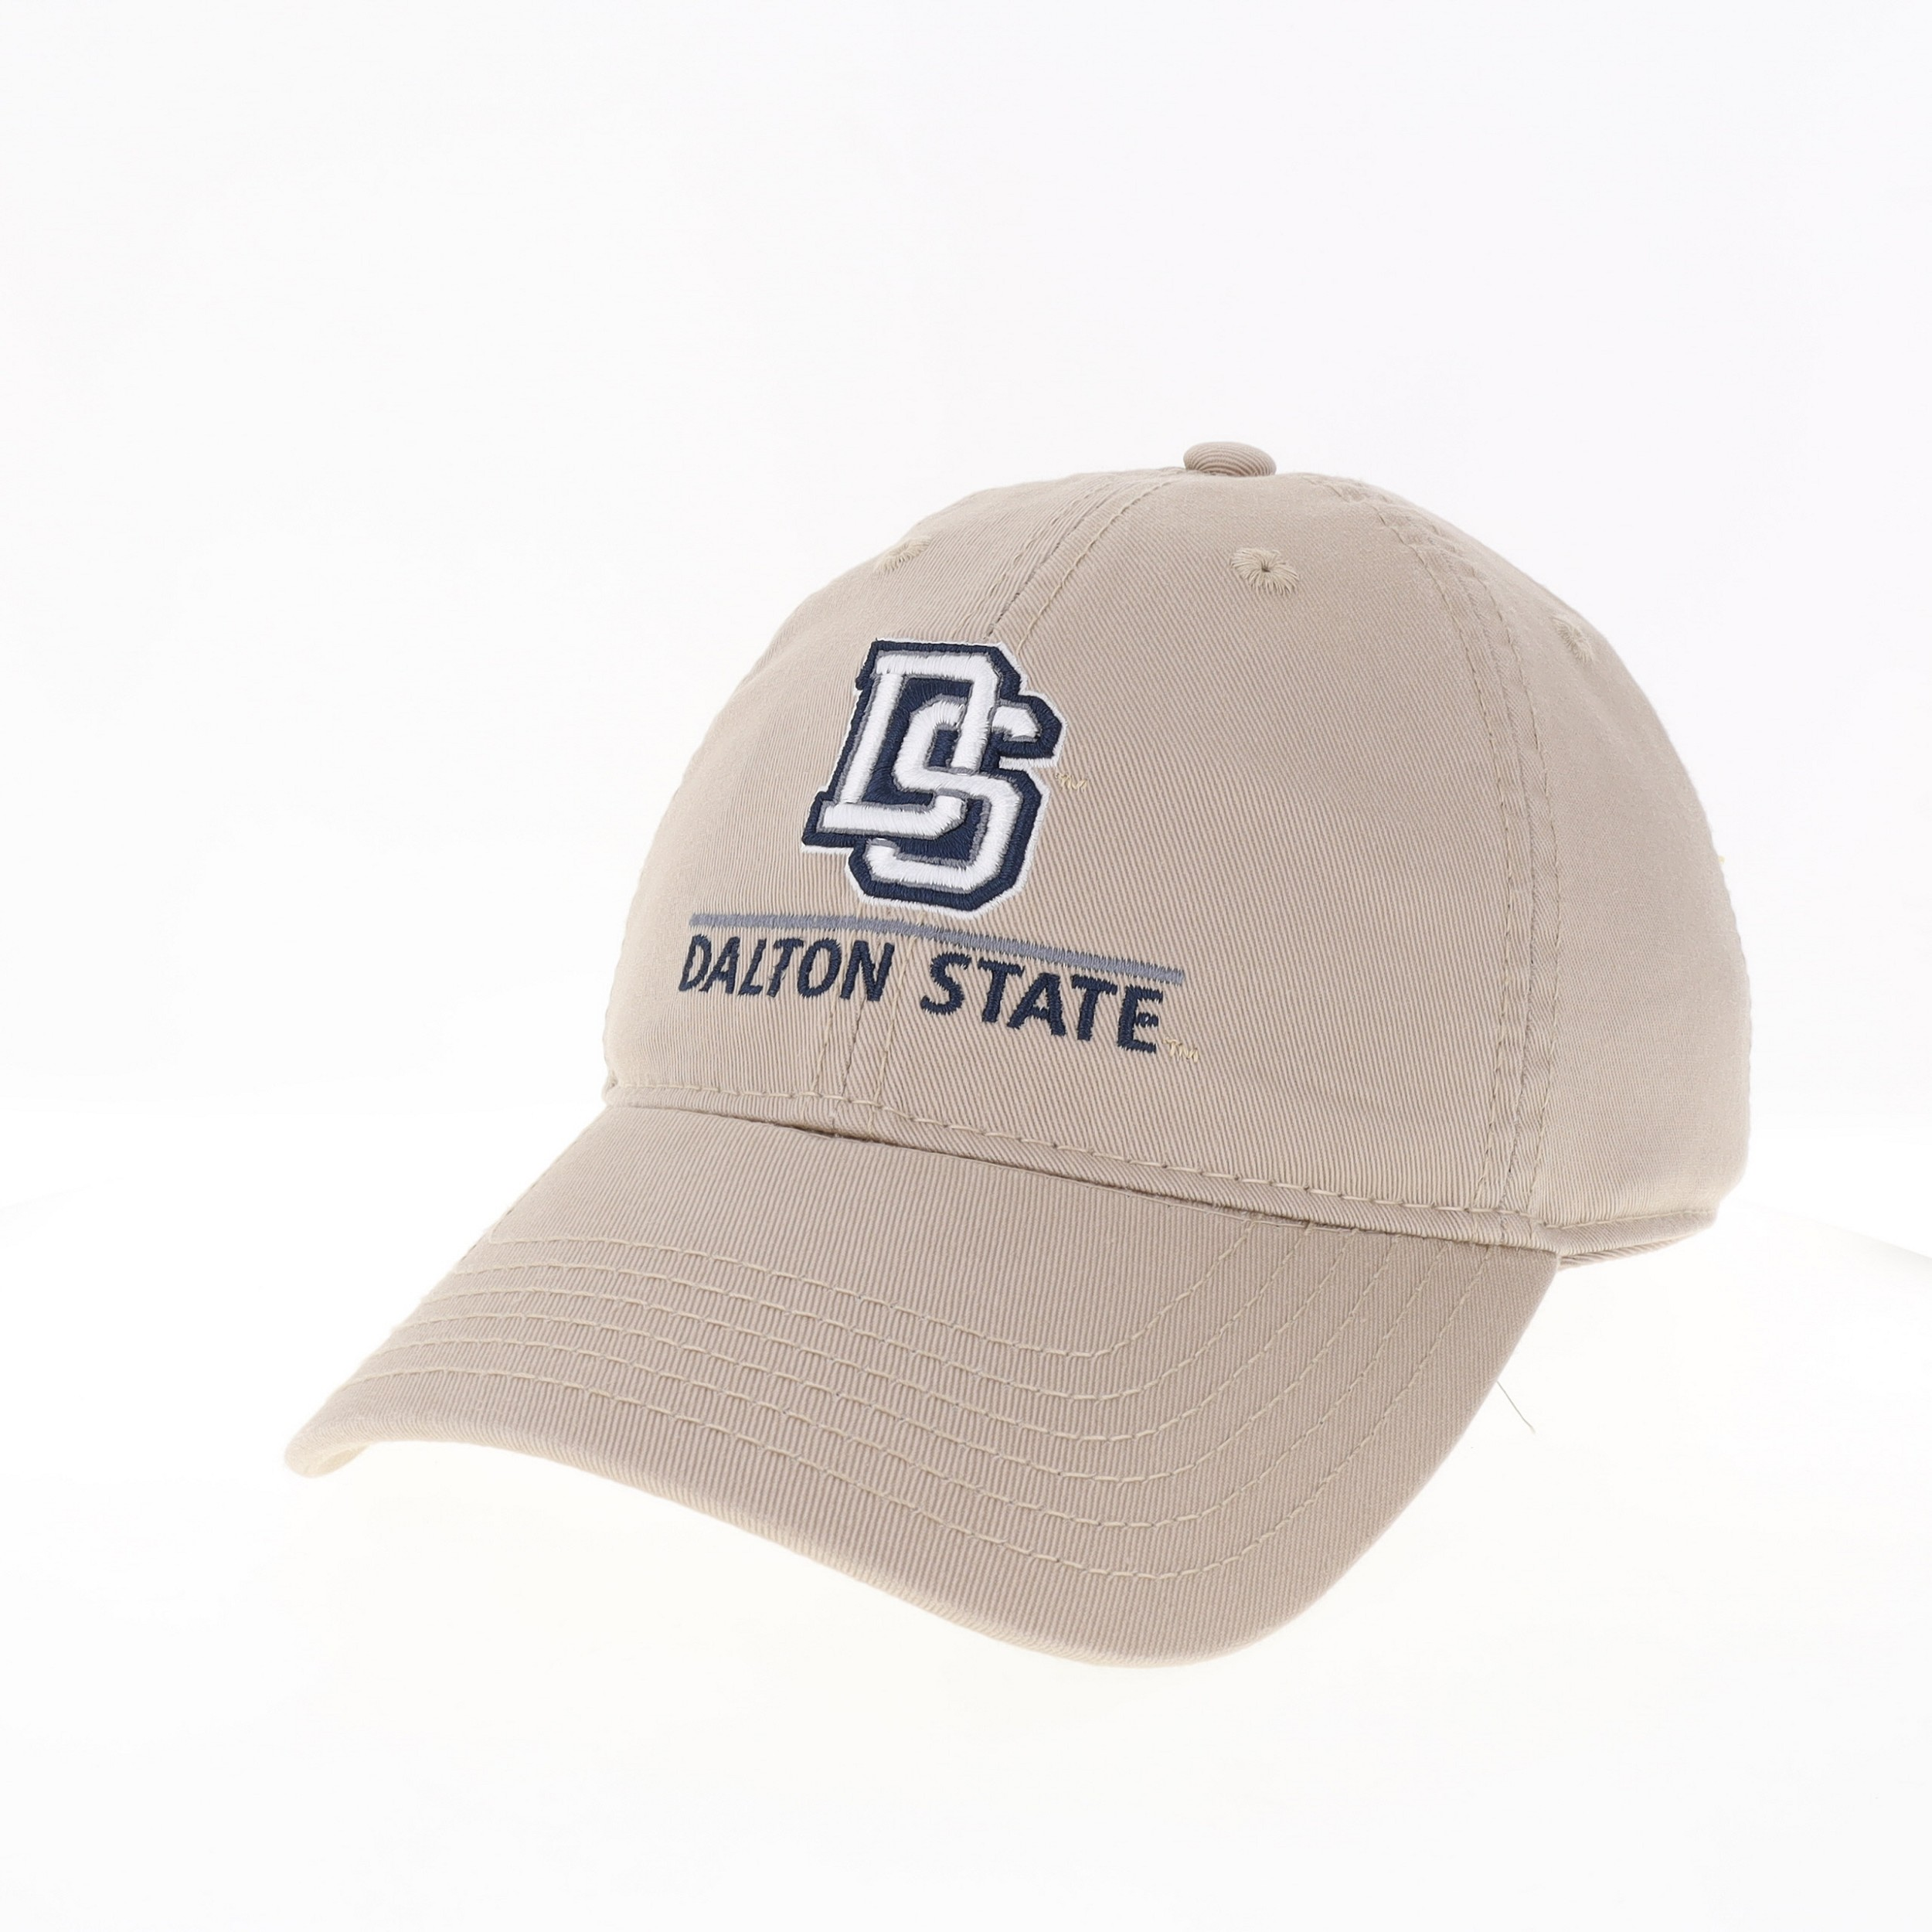 DS Logo Dalton State Relaxed Twill Hat